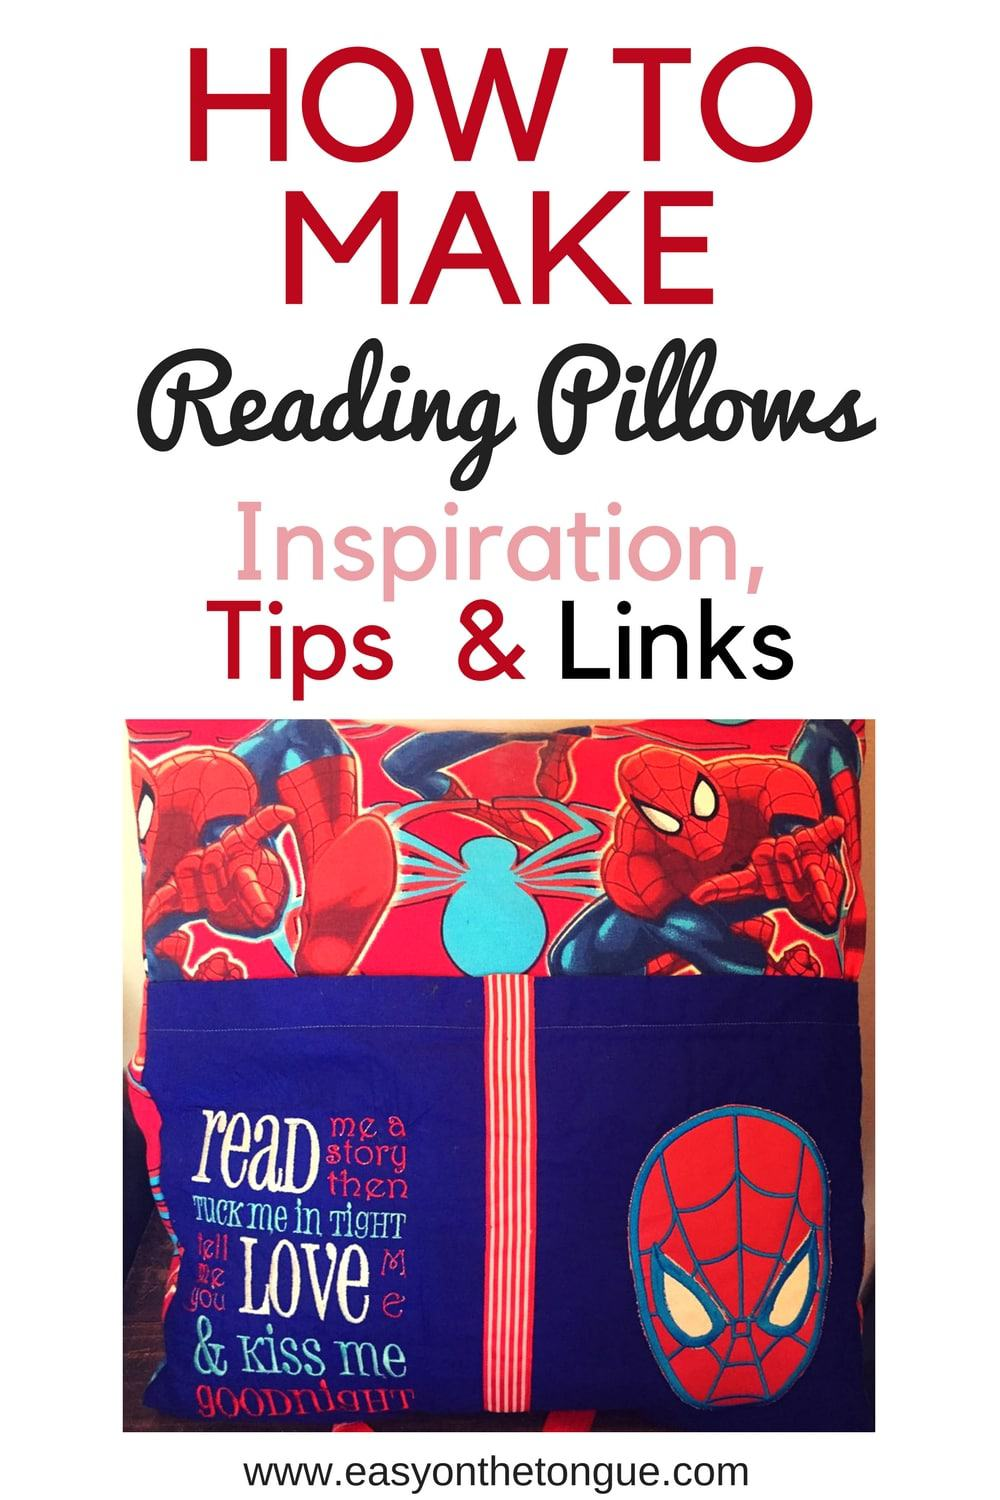 How To Make Reading Pillows Inspiration Tips Links,Diy Phone Case Design Ideas